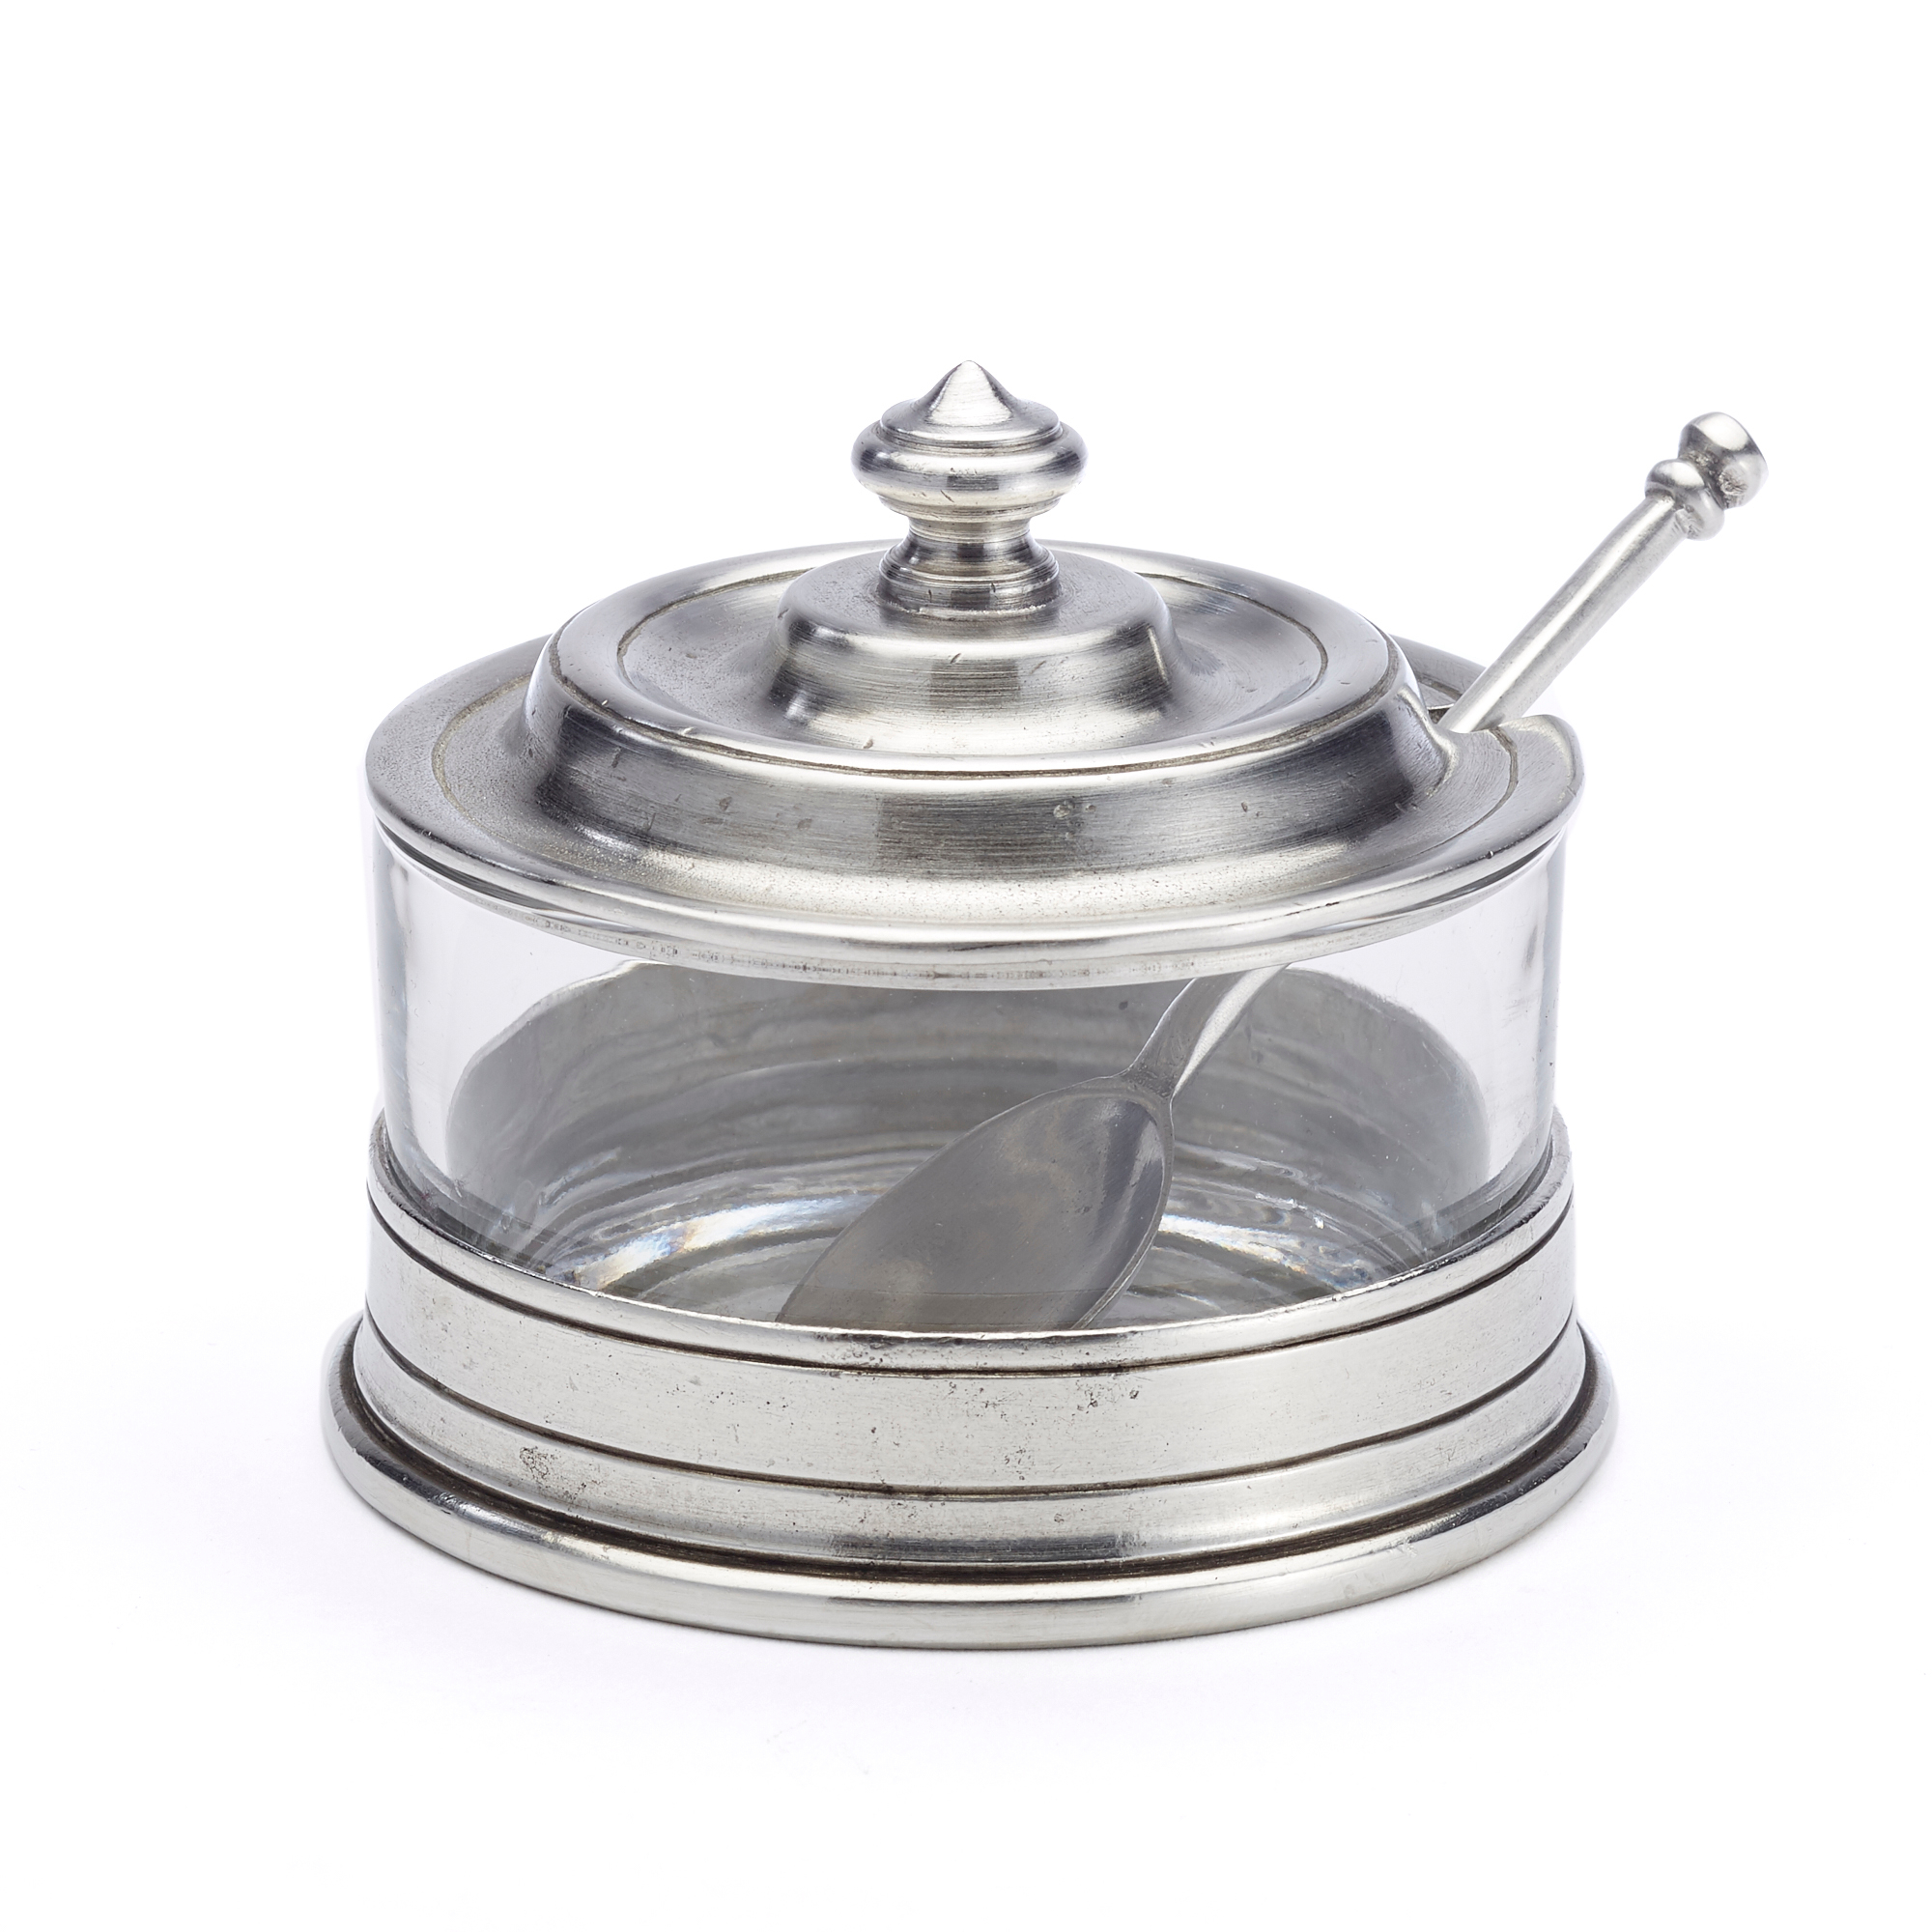 Match Jam Pot with Spoon